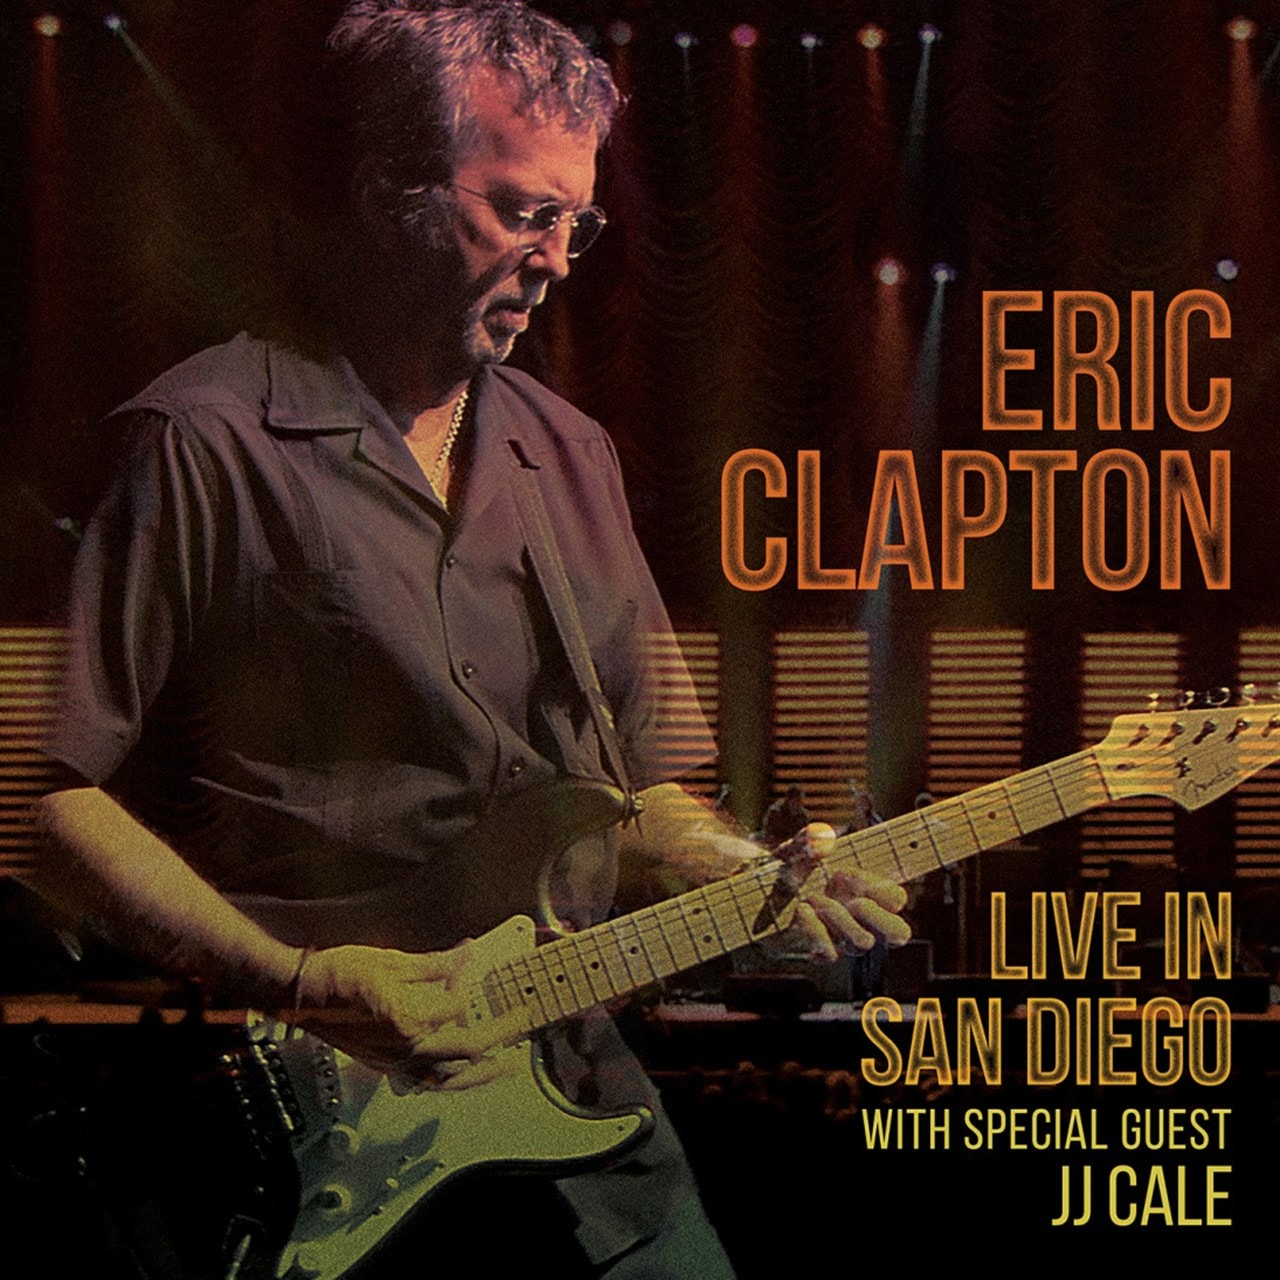 Live in San Diego With Special Guest J. J. Cale - 1